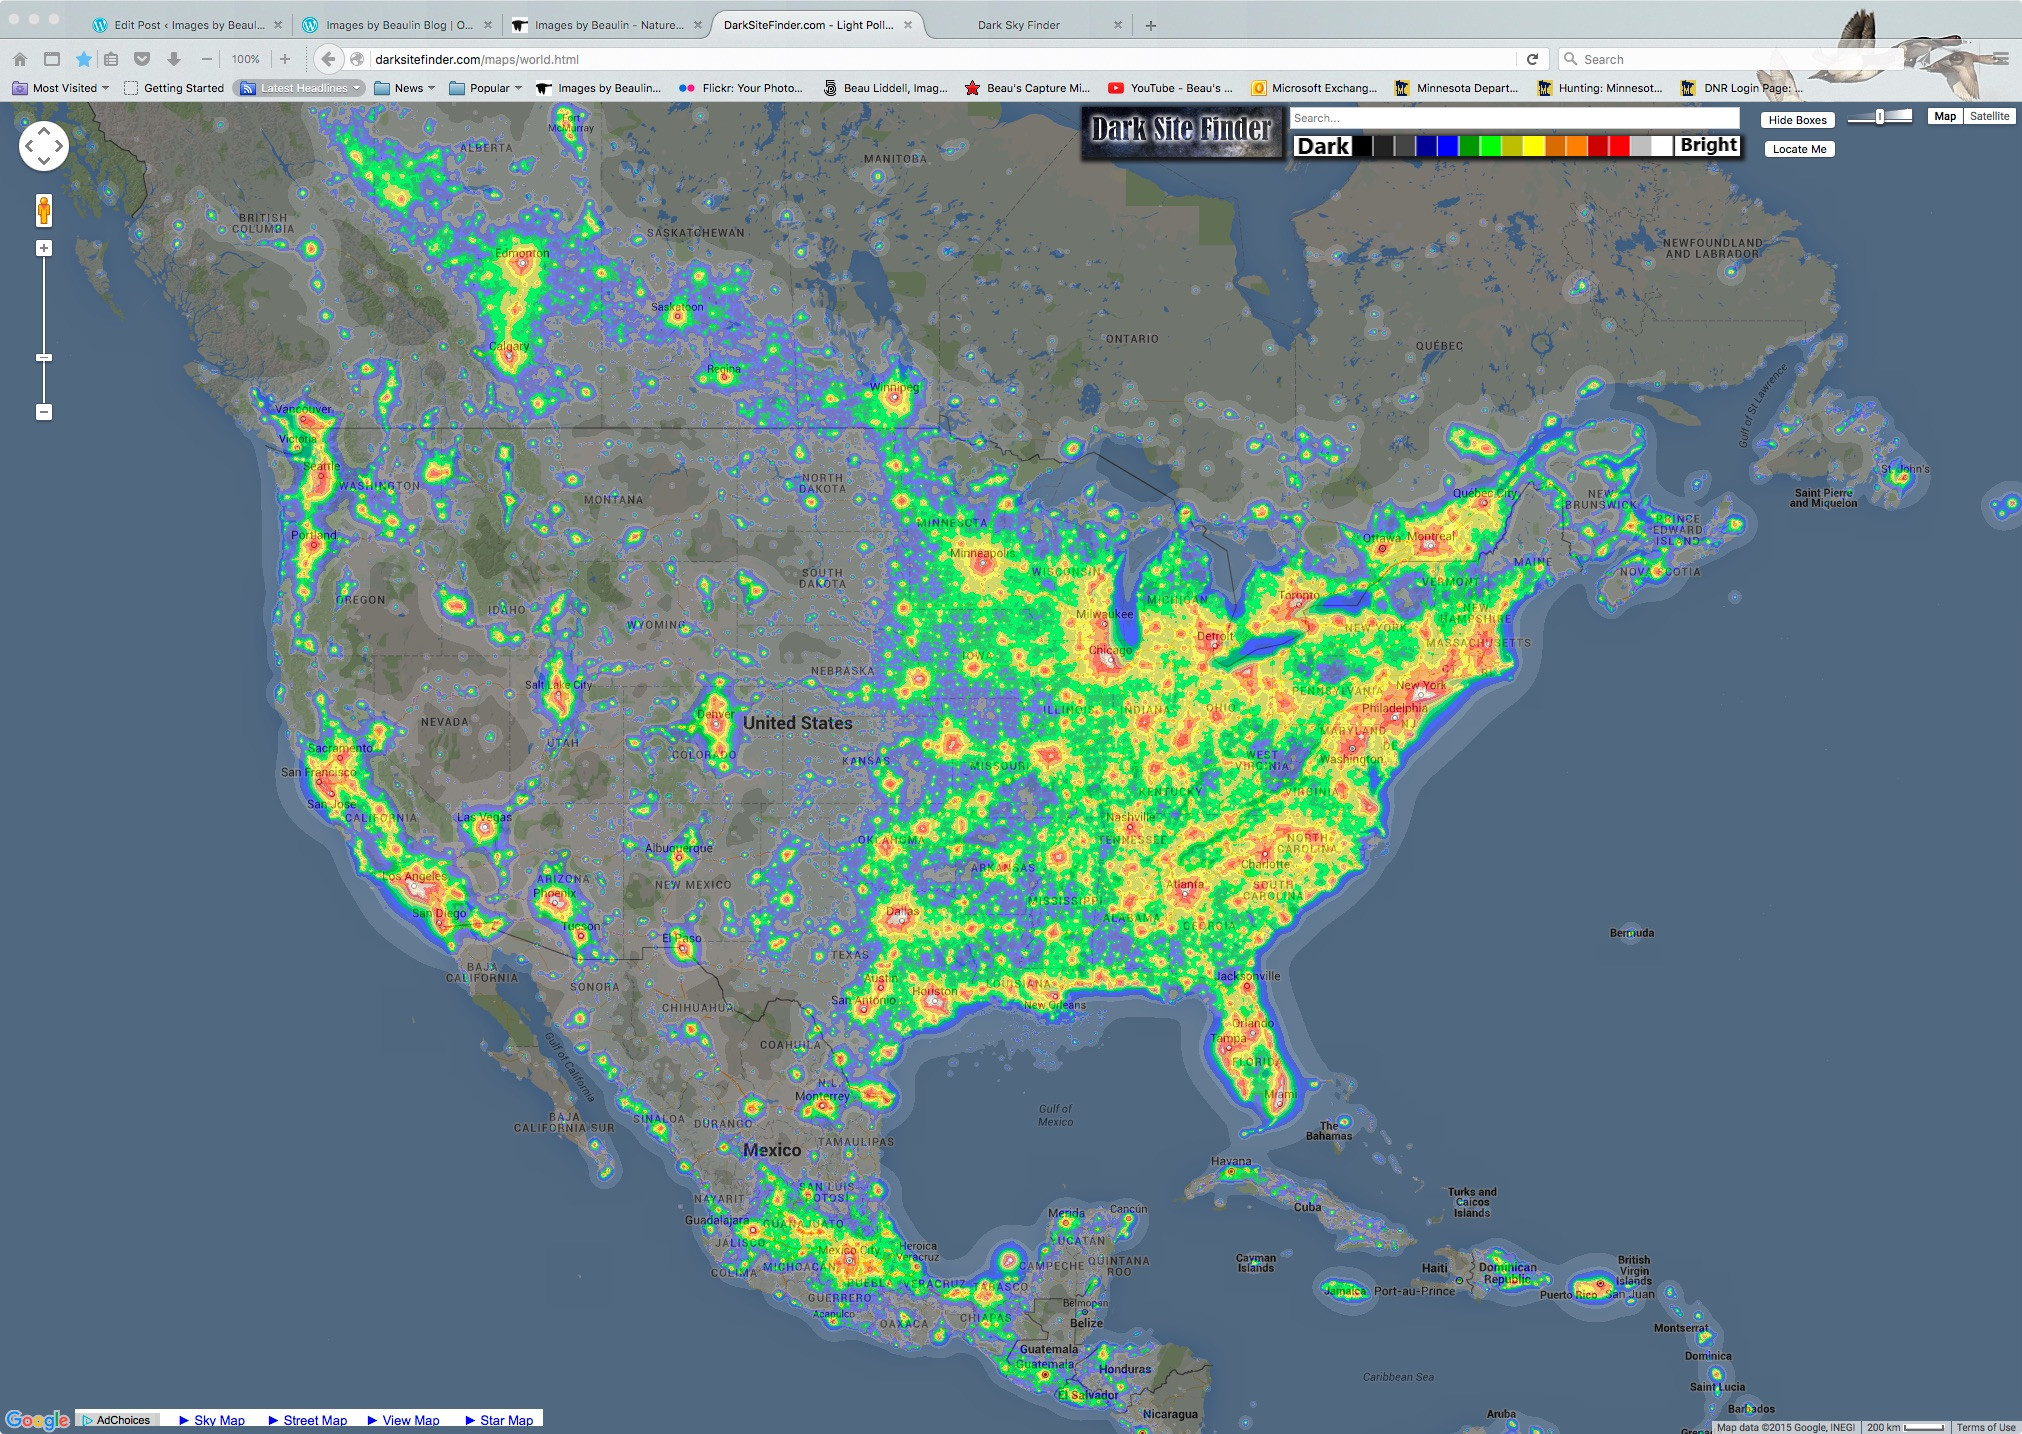 Light Pollution Map California Outline Milky Way - Ettcarworld - Light Pollution Map California